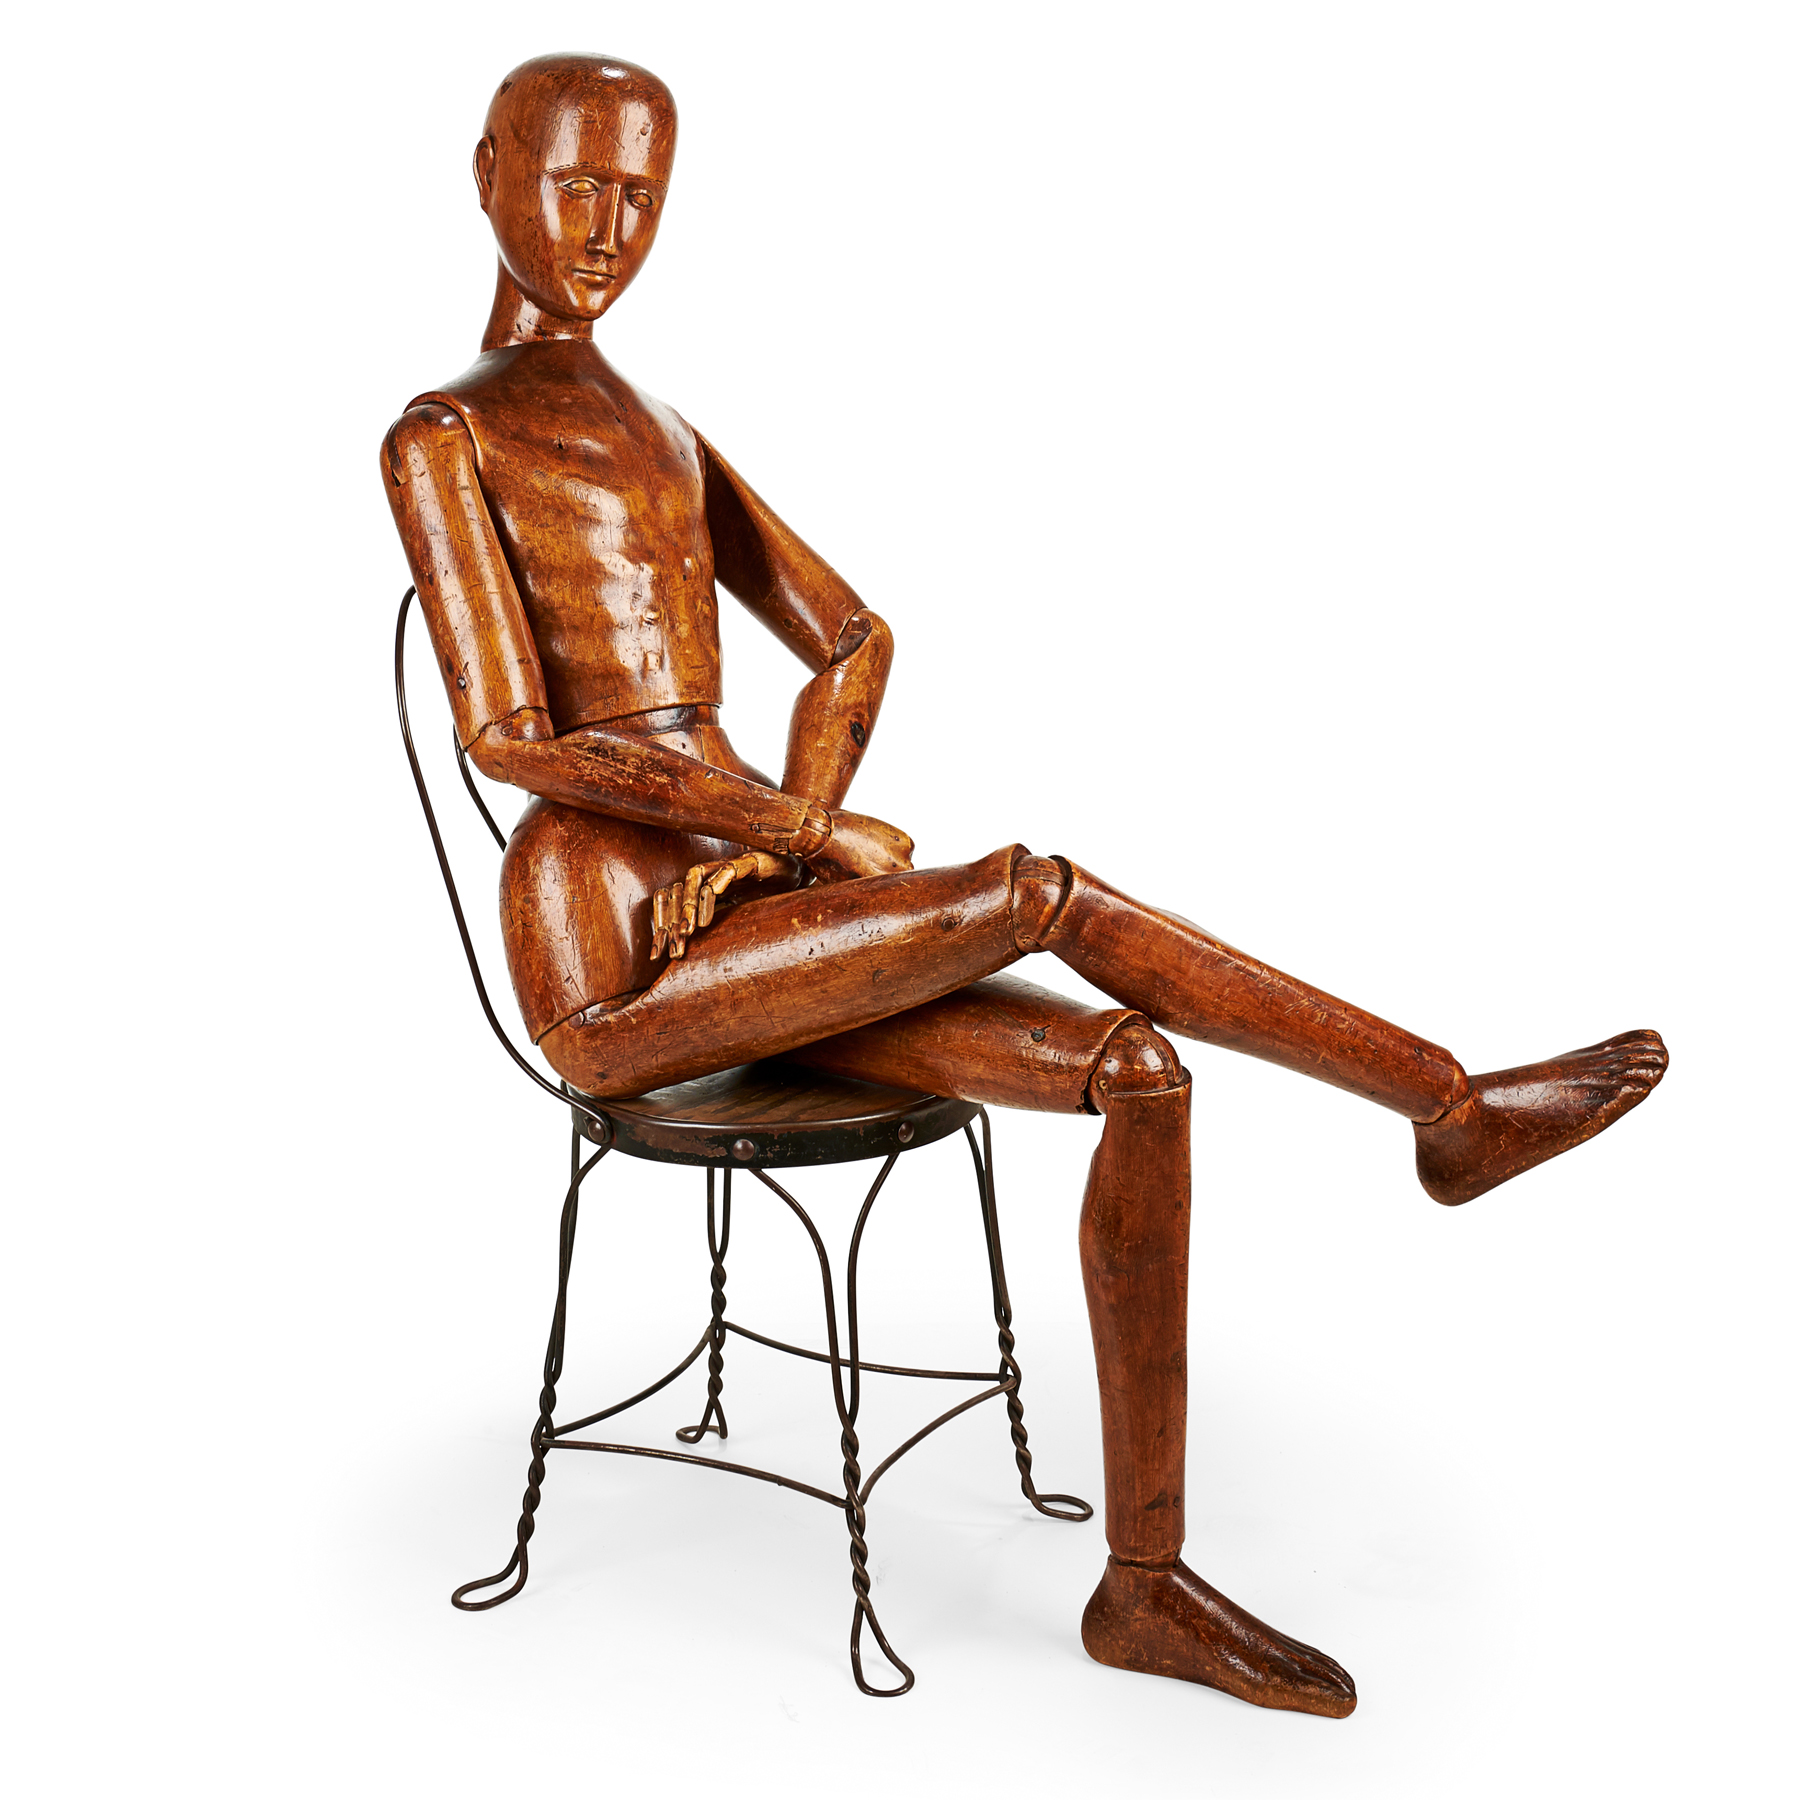 A life-size articulated wooden artist's mannequin, made in France, dating to around 1860, and measuring about 60 inches tall.